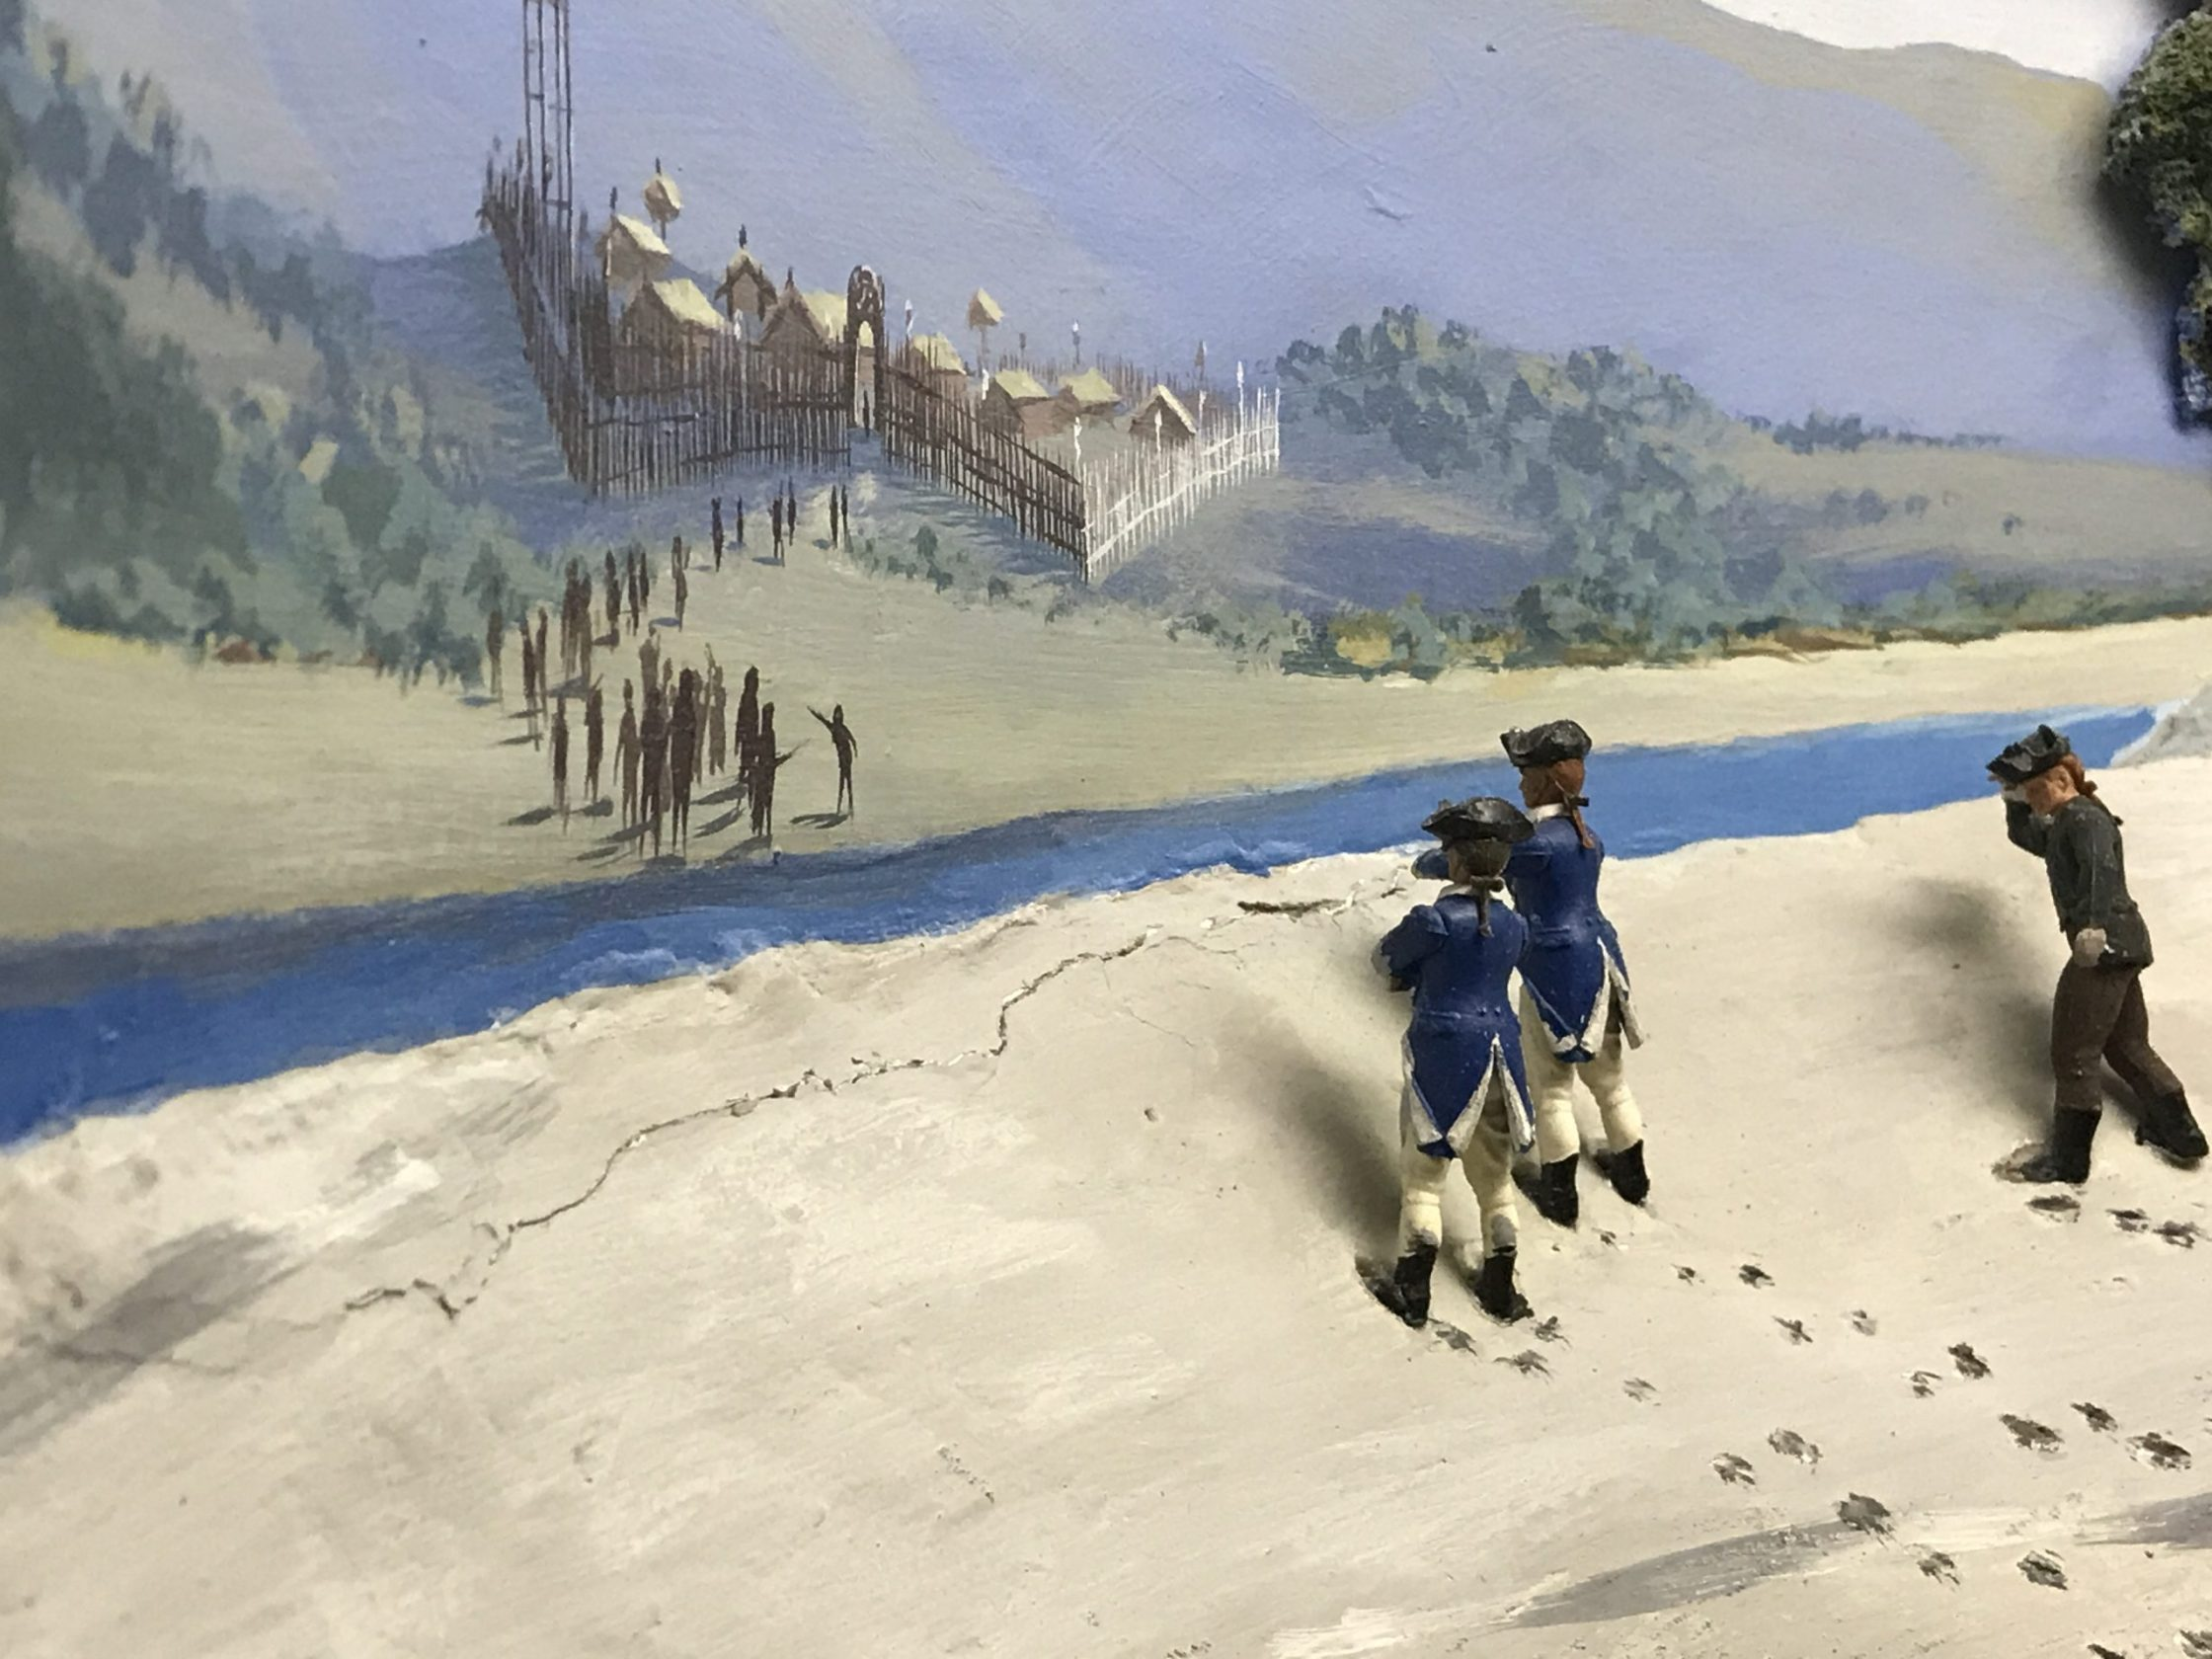 Diorama showing model soldiers wearing British navy uniforms from the late 18th century as the shores of eastern New Zealand. In the background flat brown painted figures with no features representing Māori.